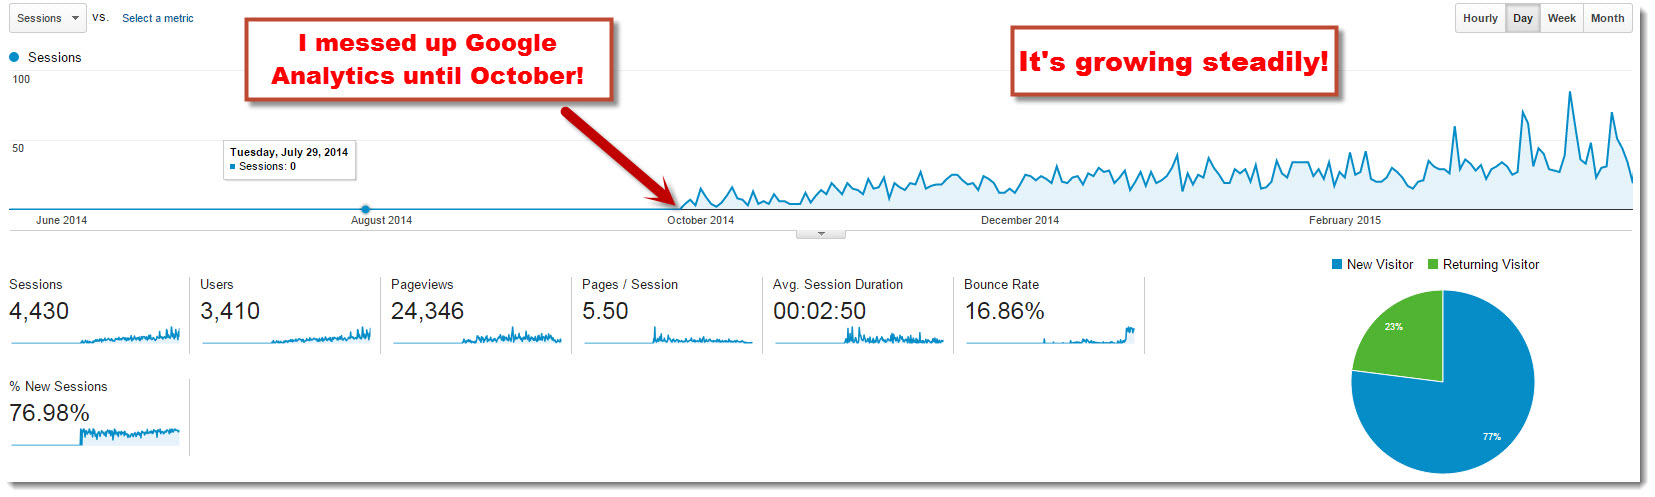 Google Analytics for May til March